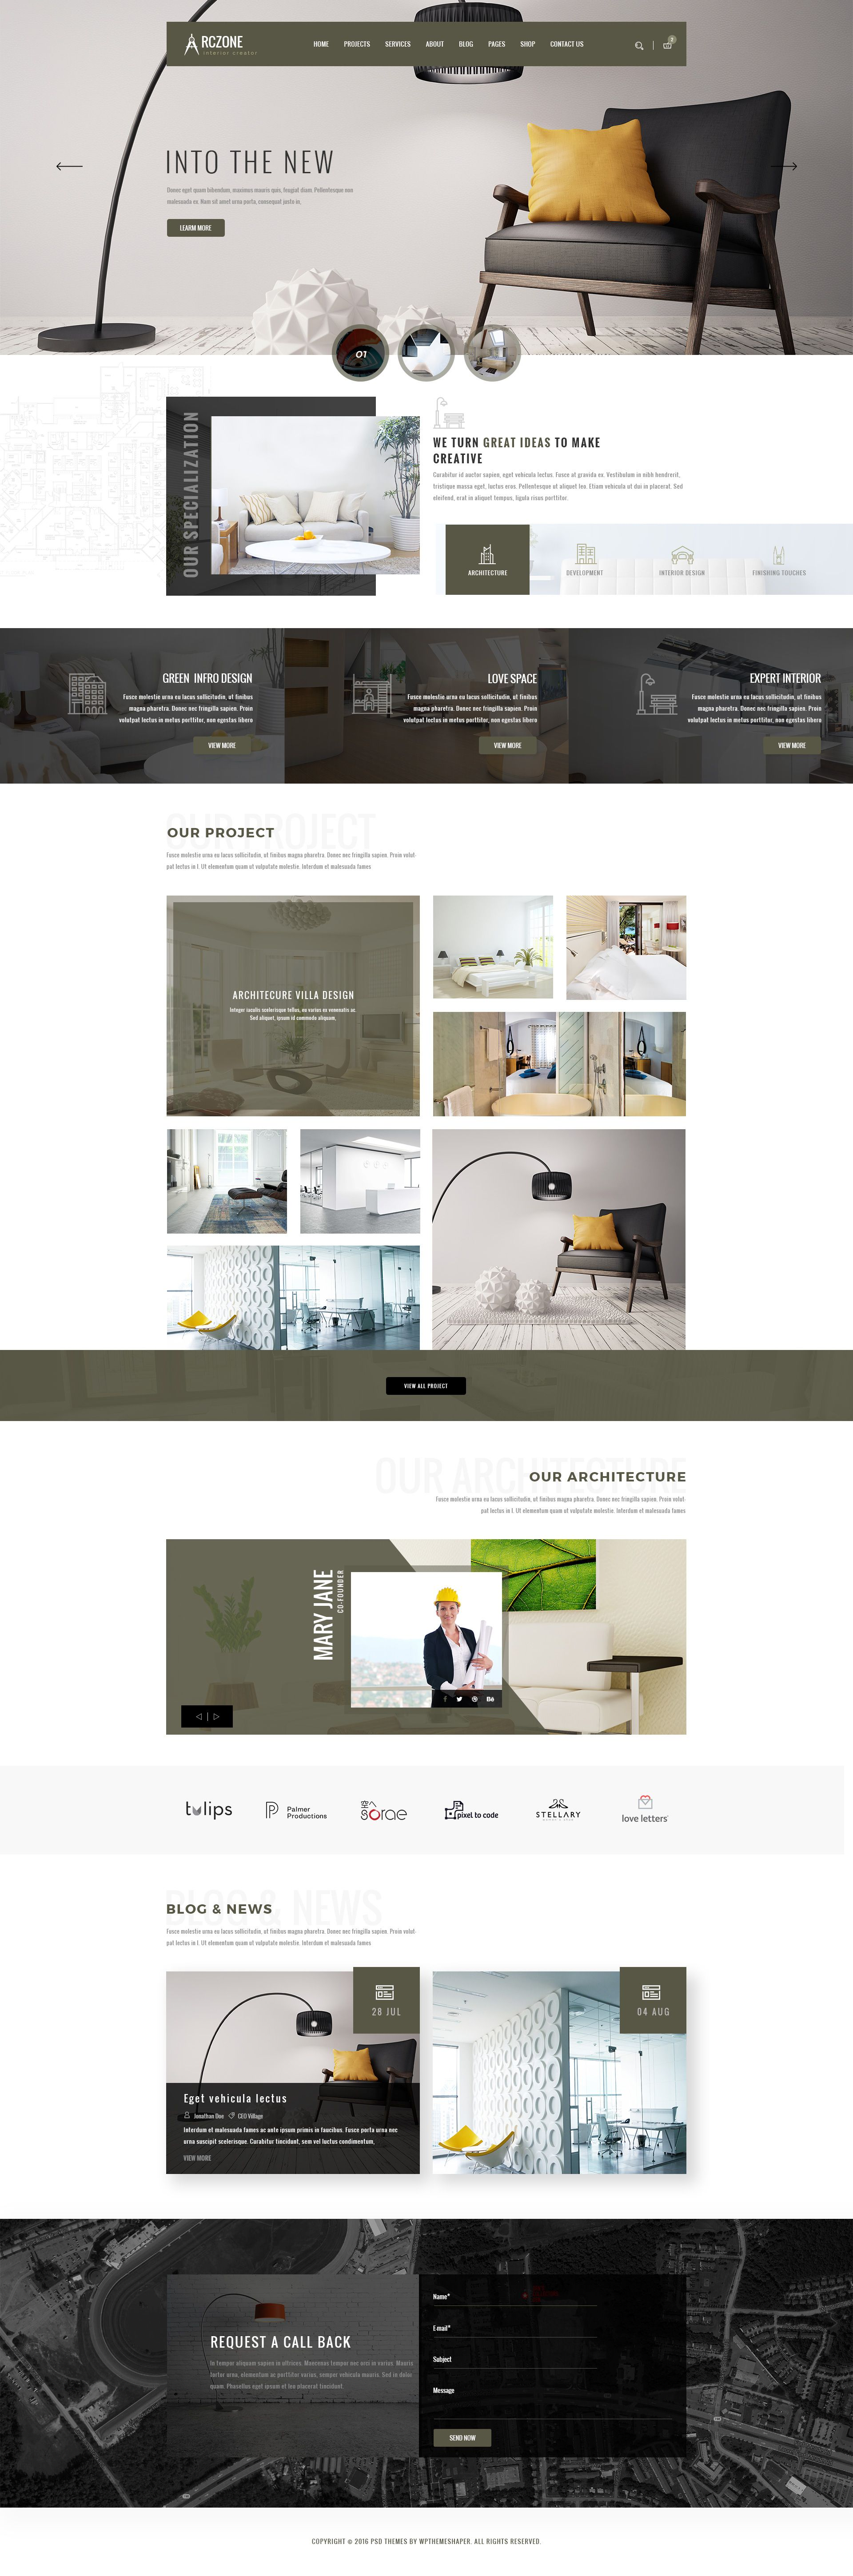 ARCZONE  Interior Design, Decor, Architecture Business Template. By  Wpthemeshaper